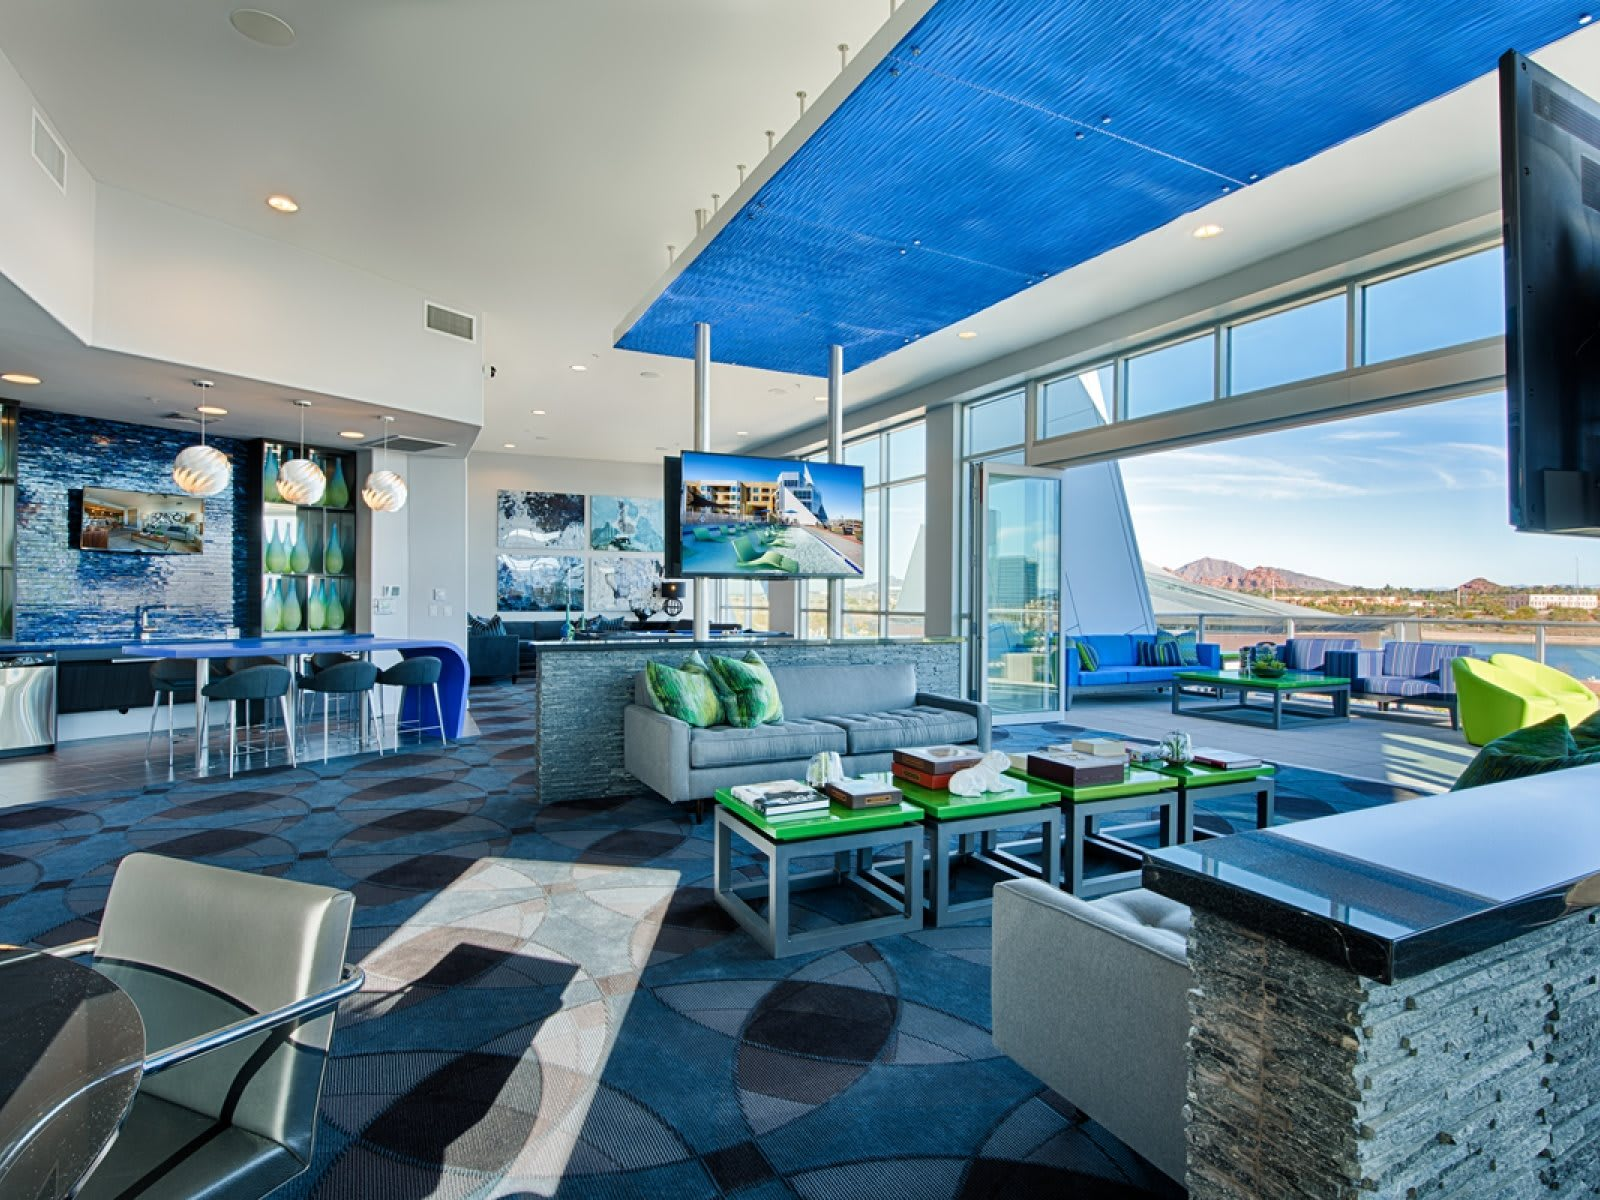 open air sky lounge with TVs